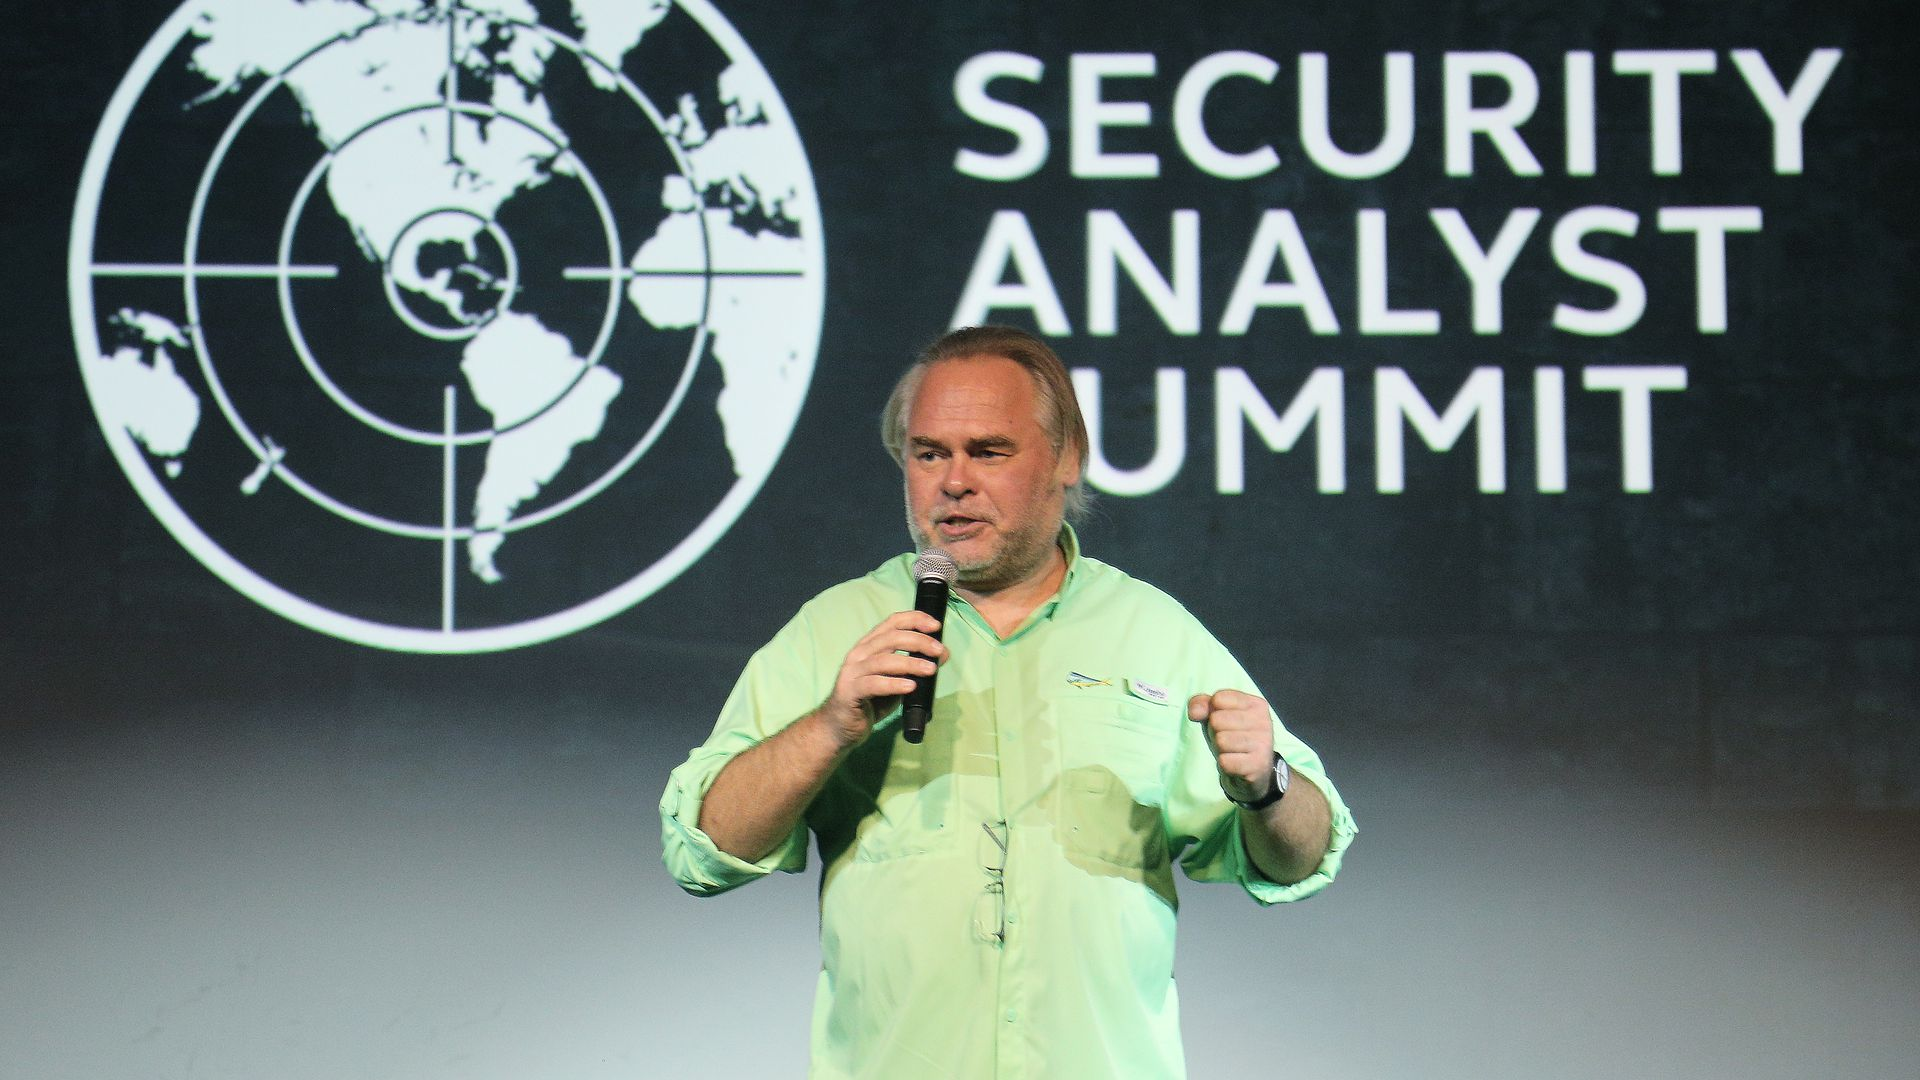 Eugene Kaspersky speaking